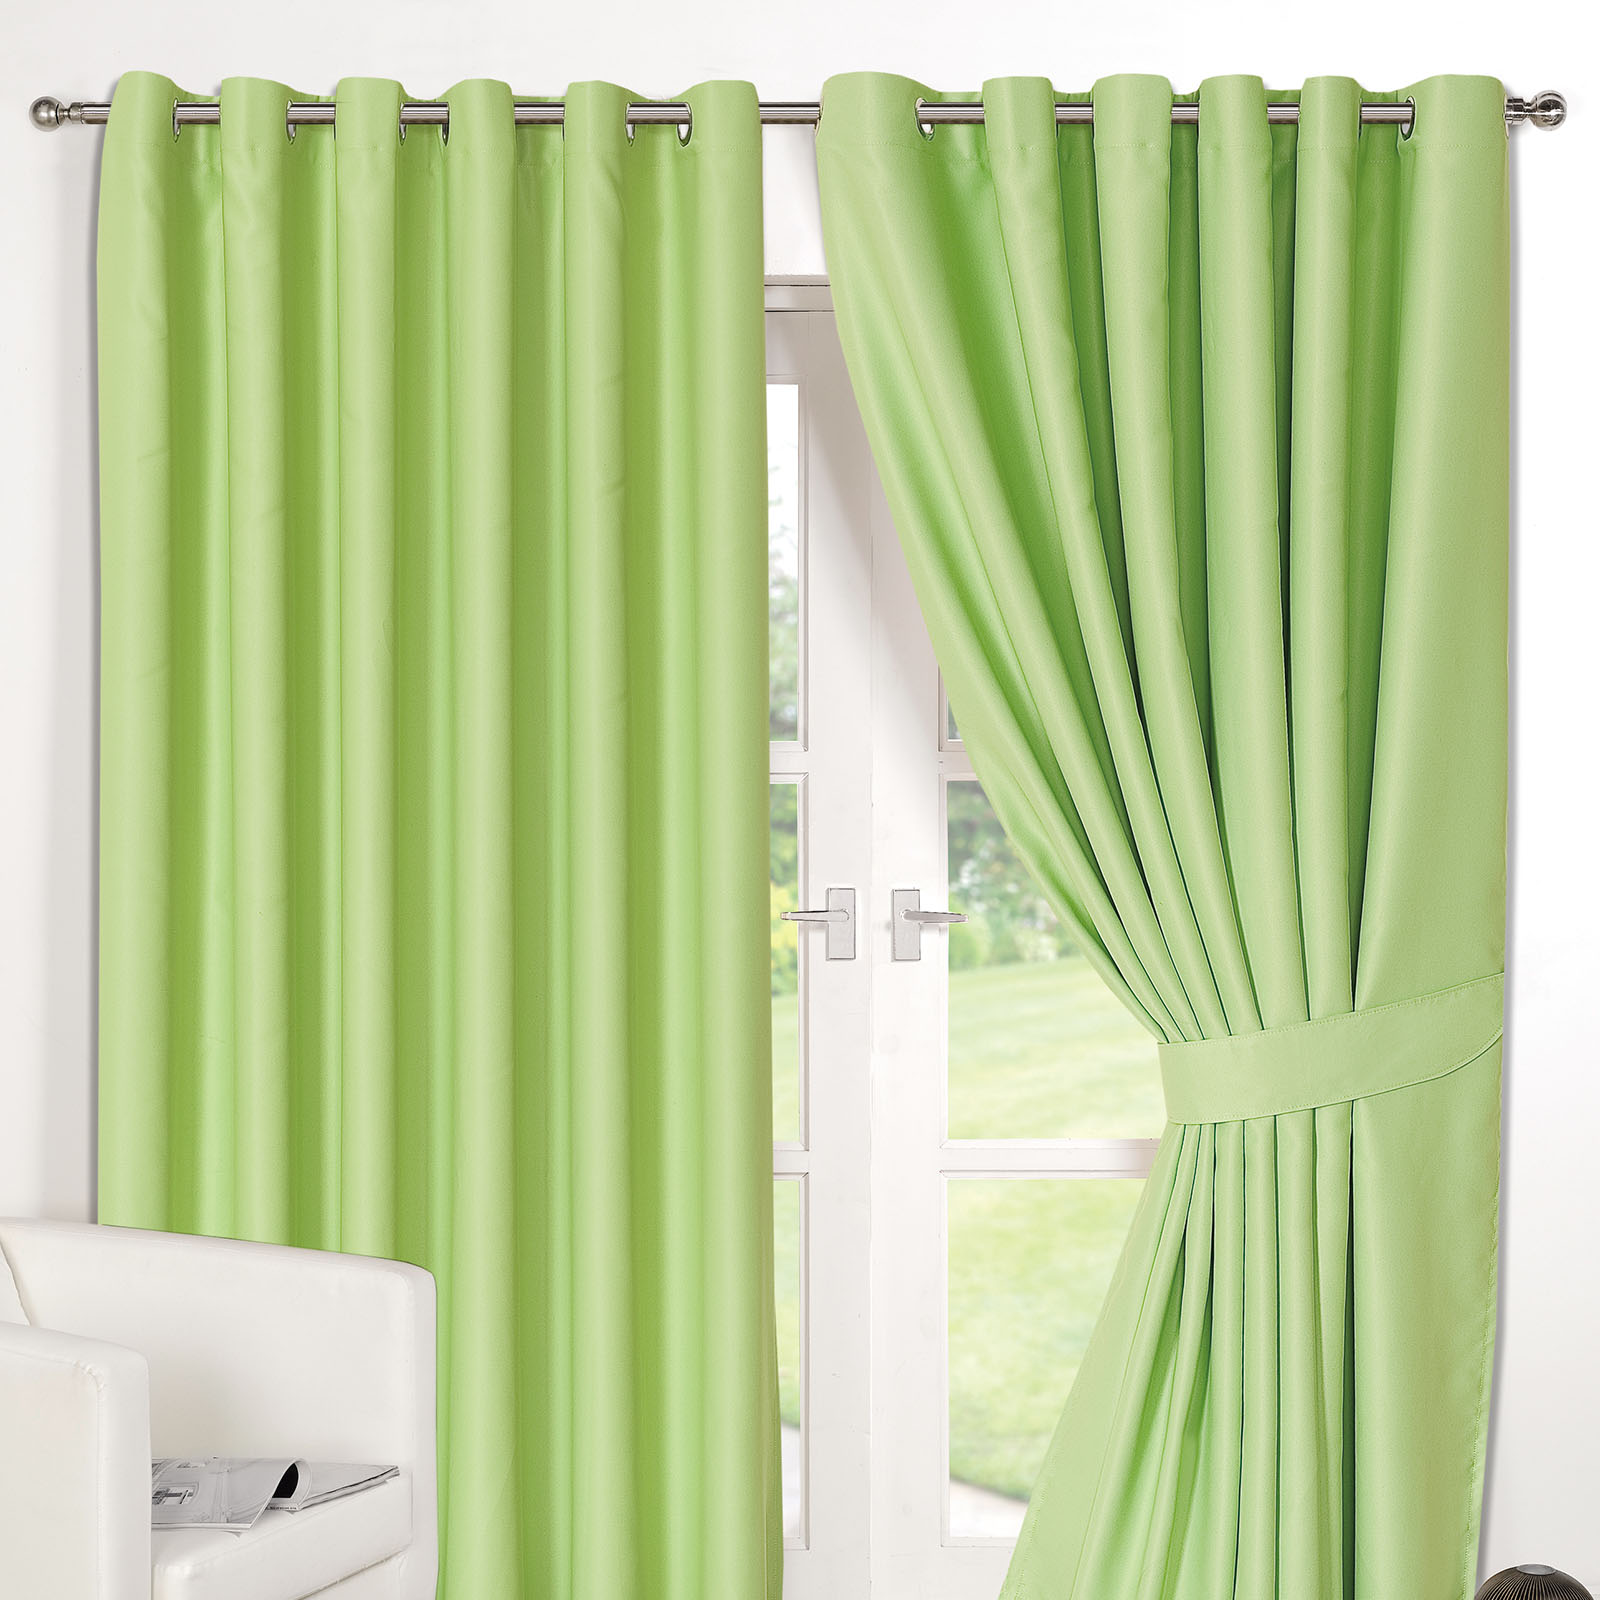 pair steel pencil ready stream this curtains poly readymade listing pleat for lined one of curtain made is